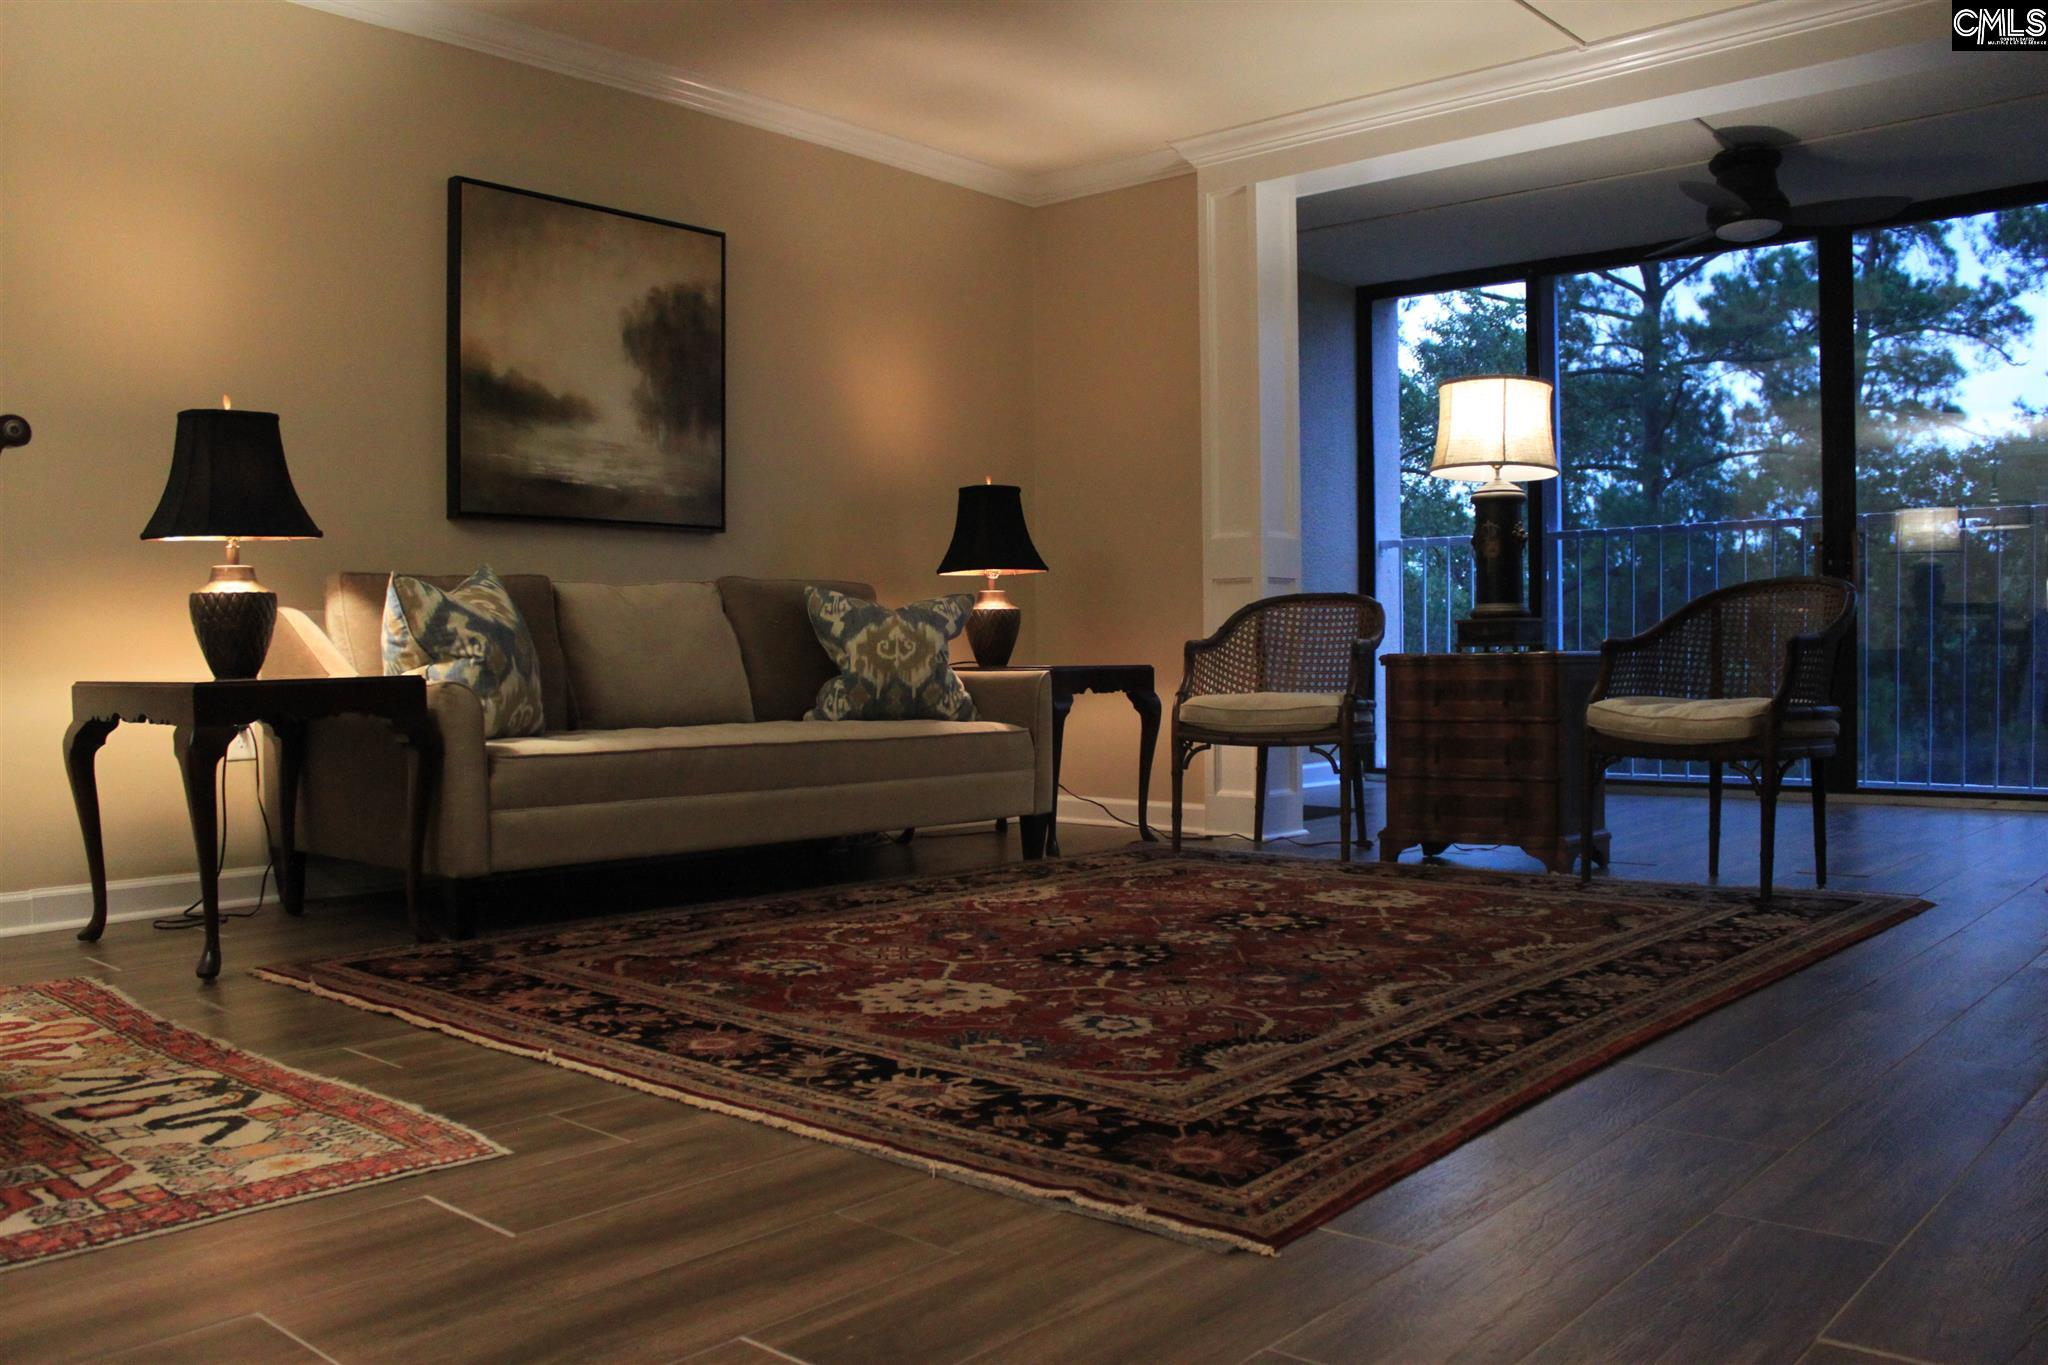 Living Room Sets For Sale In Columbia Sc Simmons Bellamy Living Room Collection Set Price